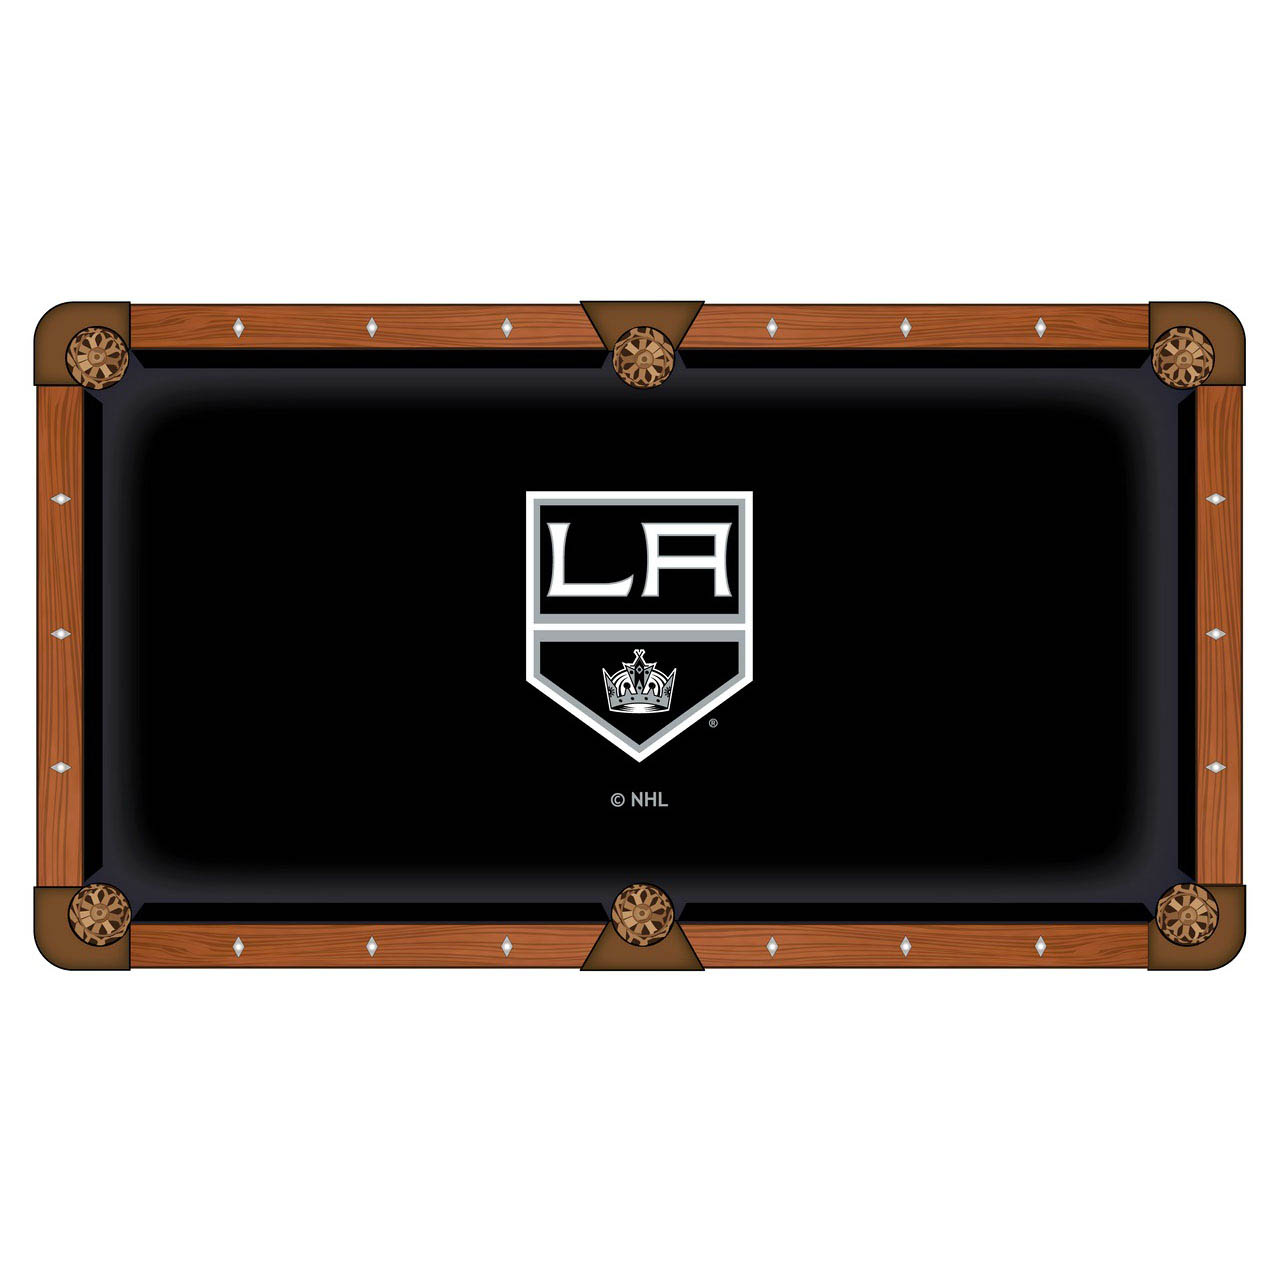 Info about Los Angeles Kings Pool Table Cloth Product Photo